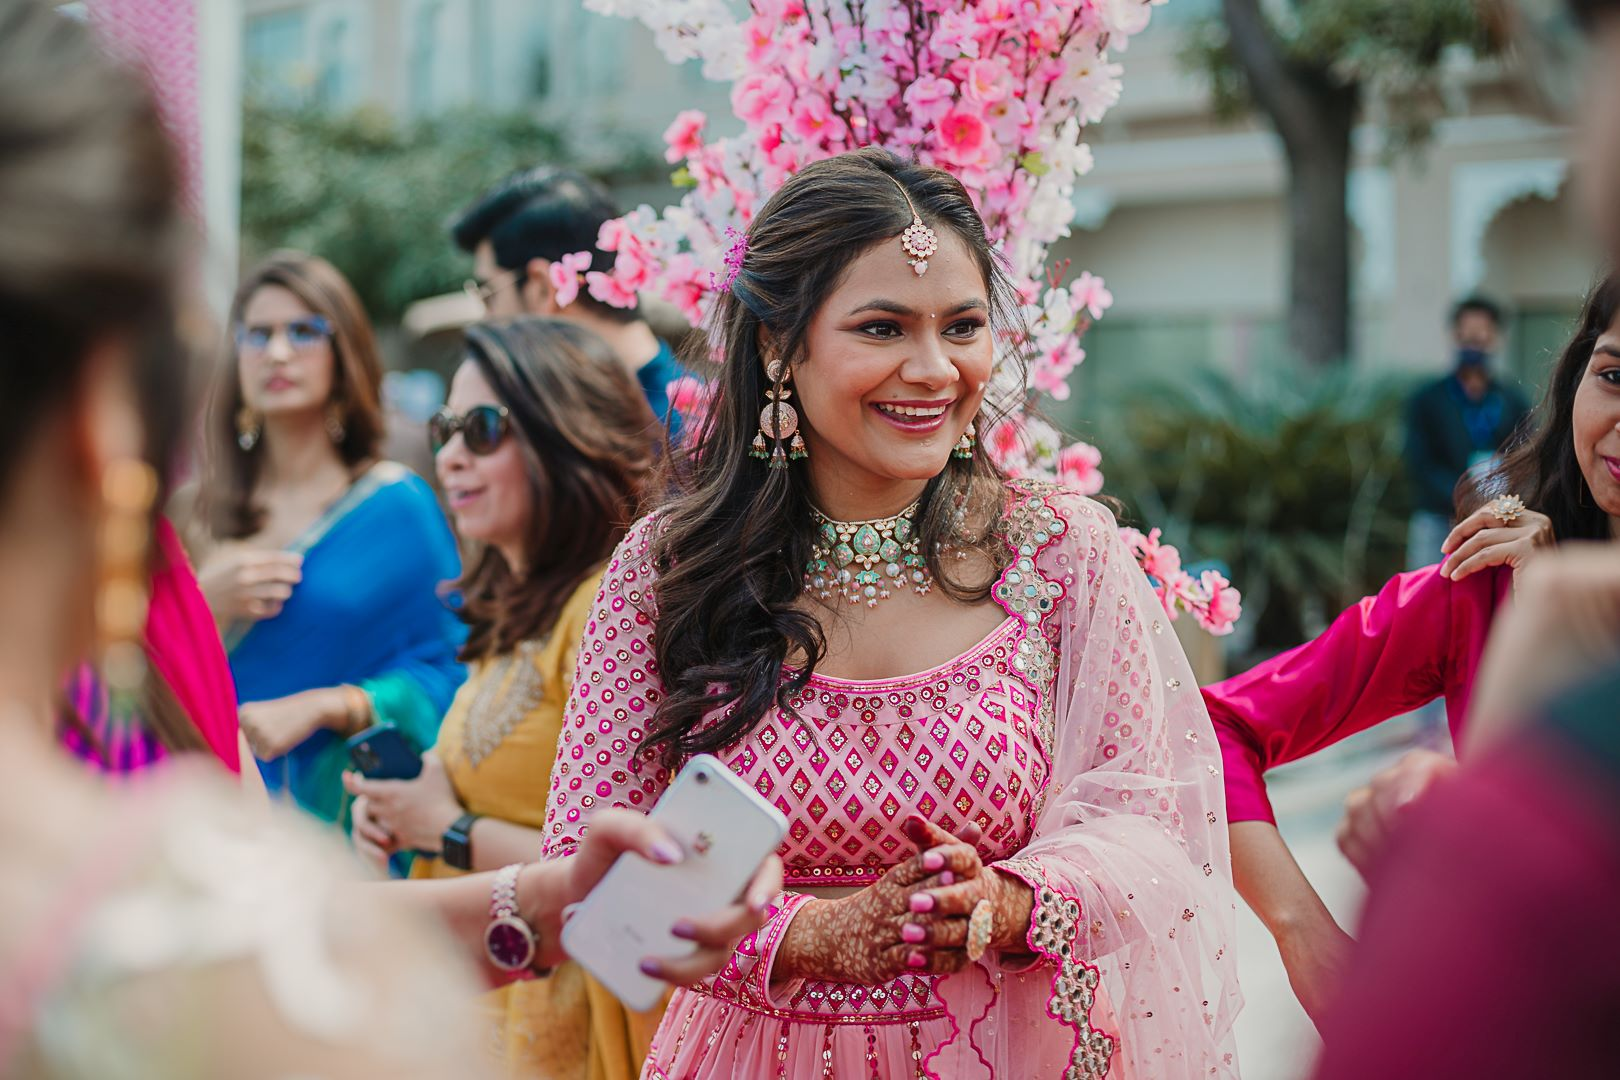 candid shot of the bride in pink